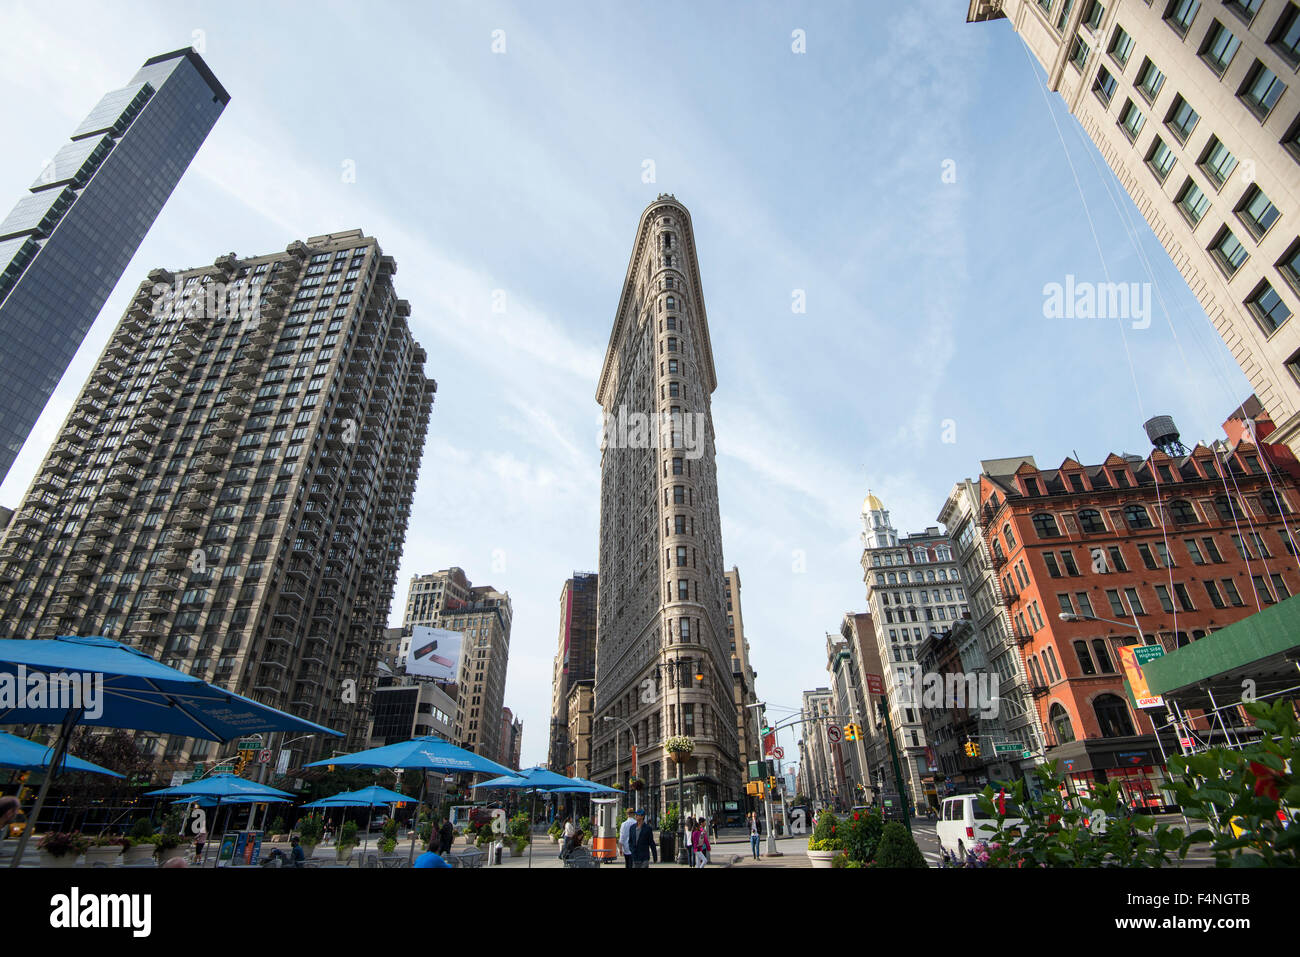 The iconic Flatiron Building in Manhattan, New York City USA - Stock Image